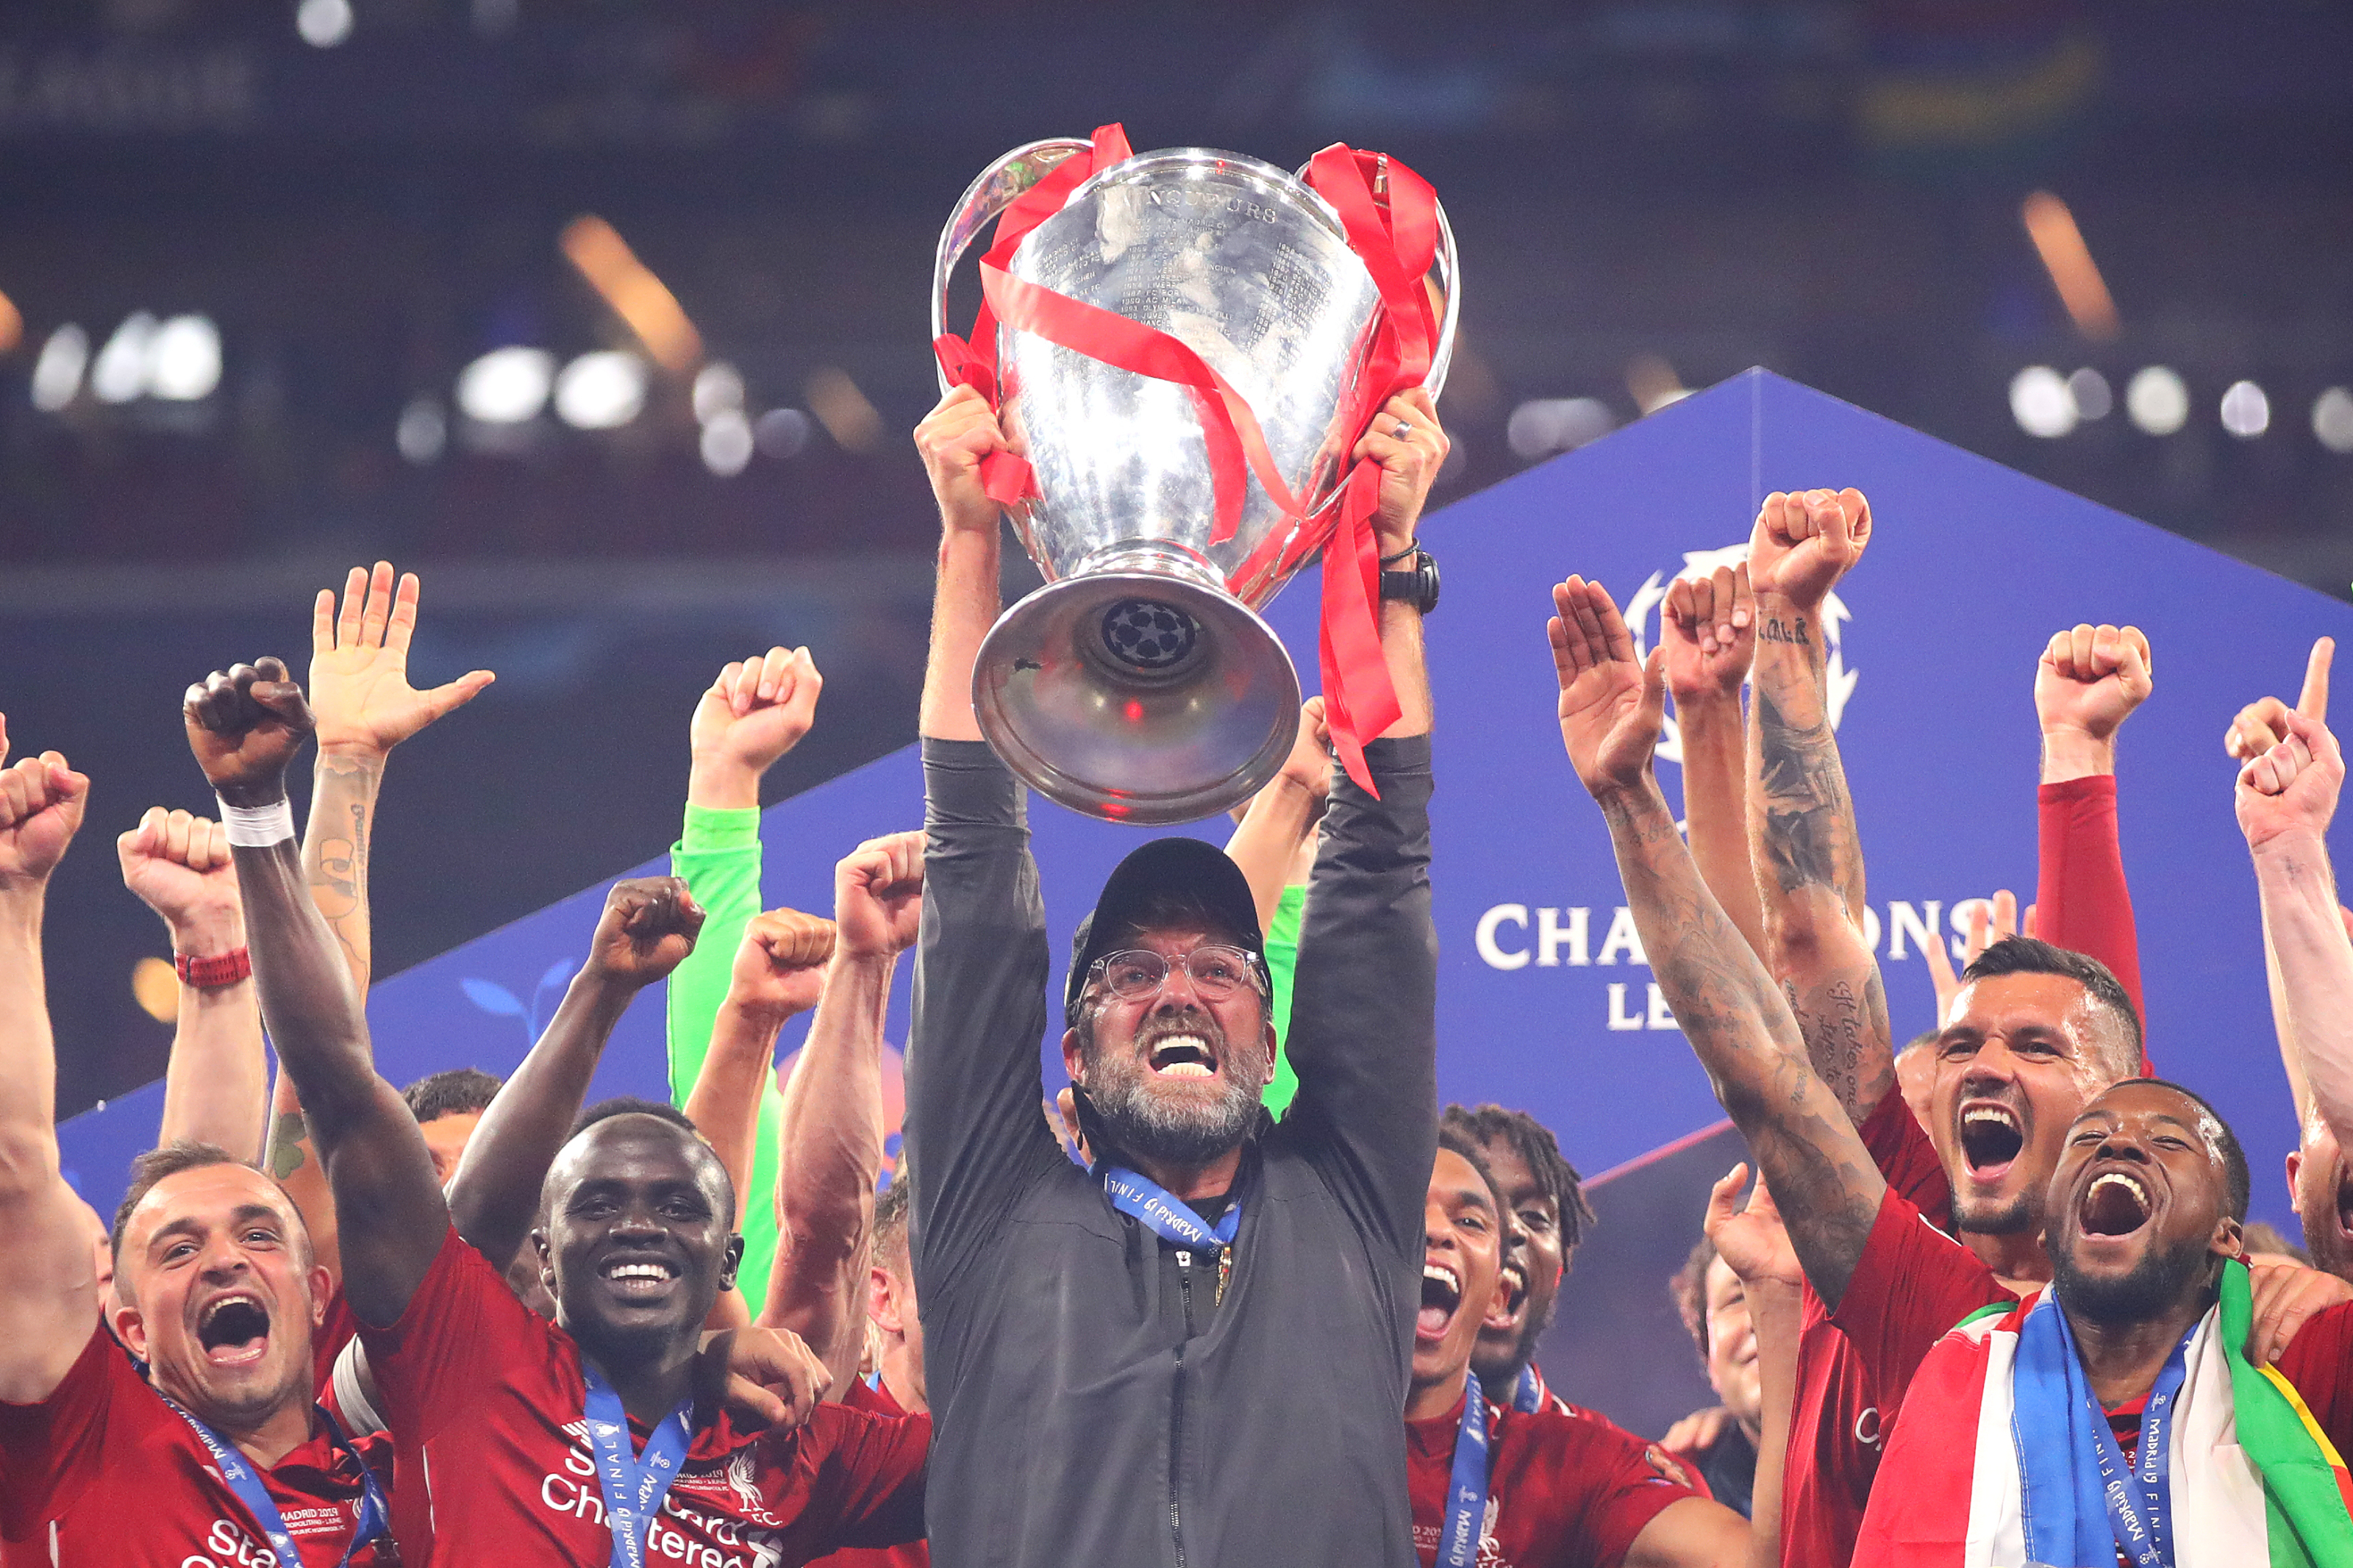 Power Ranking the 4 Premier League teams in the Champions League